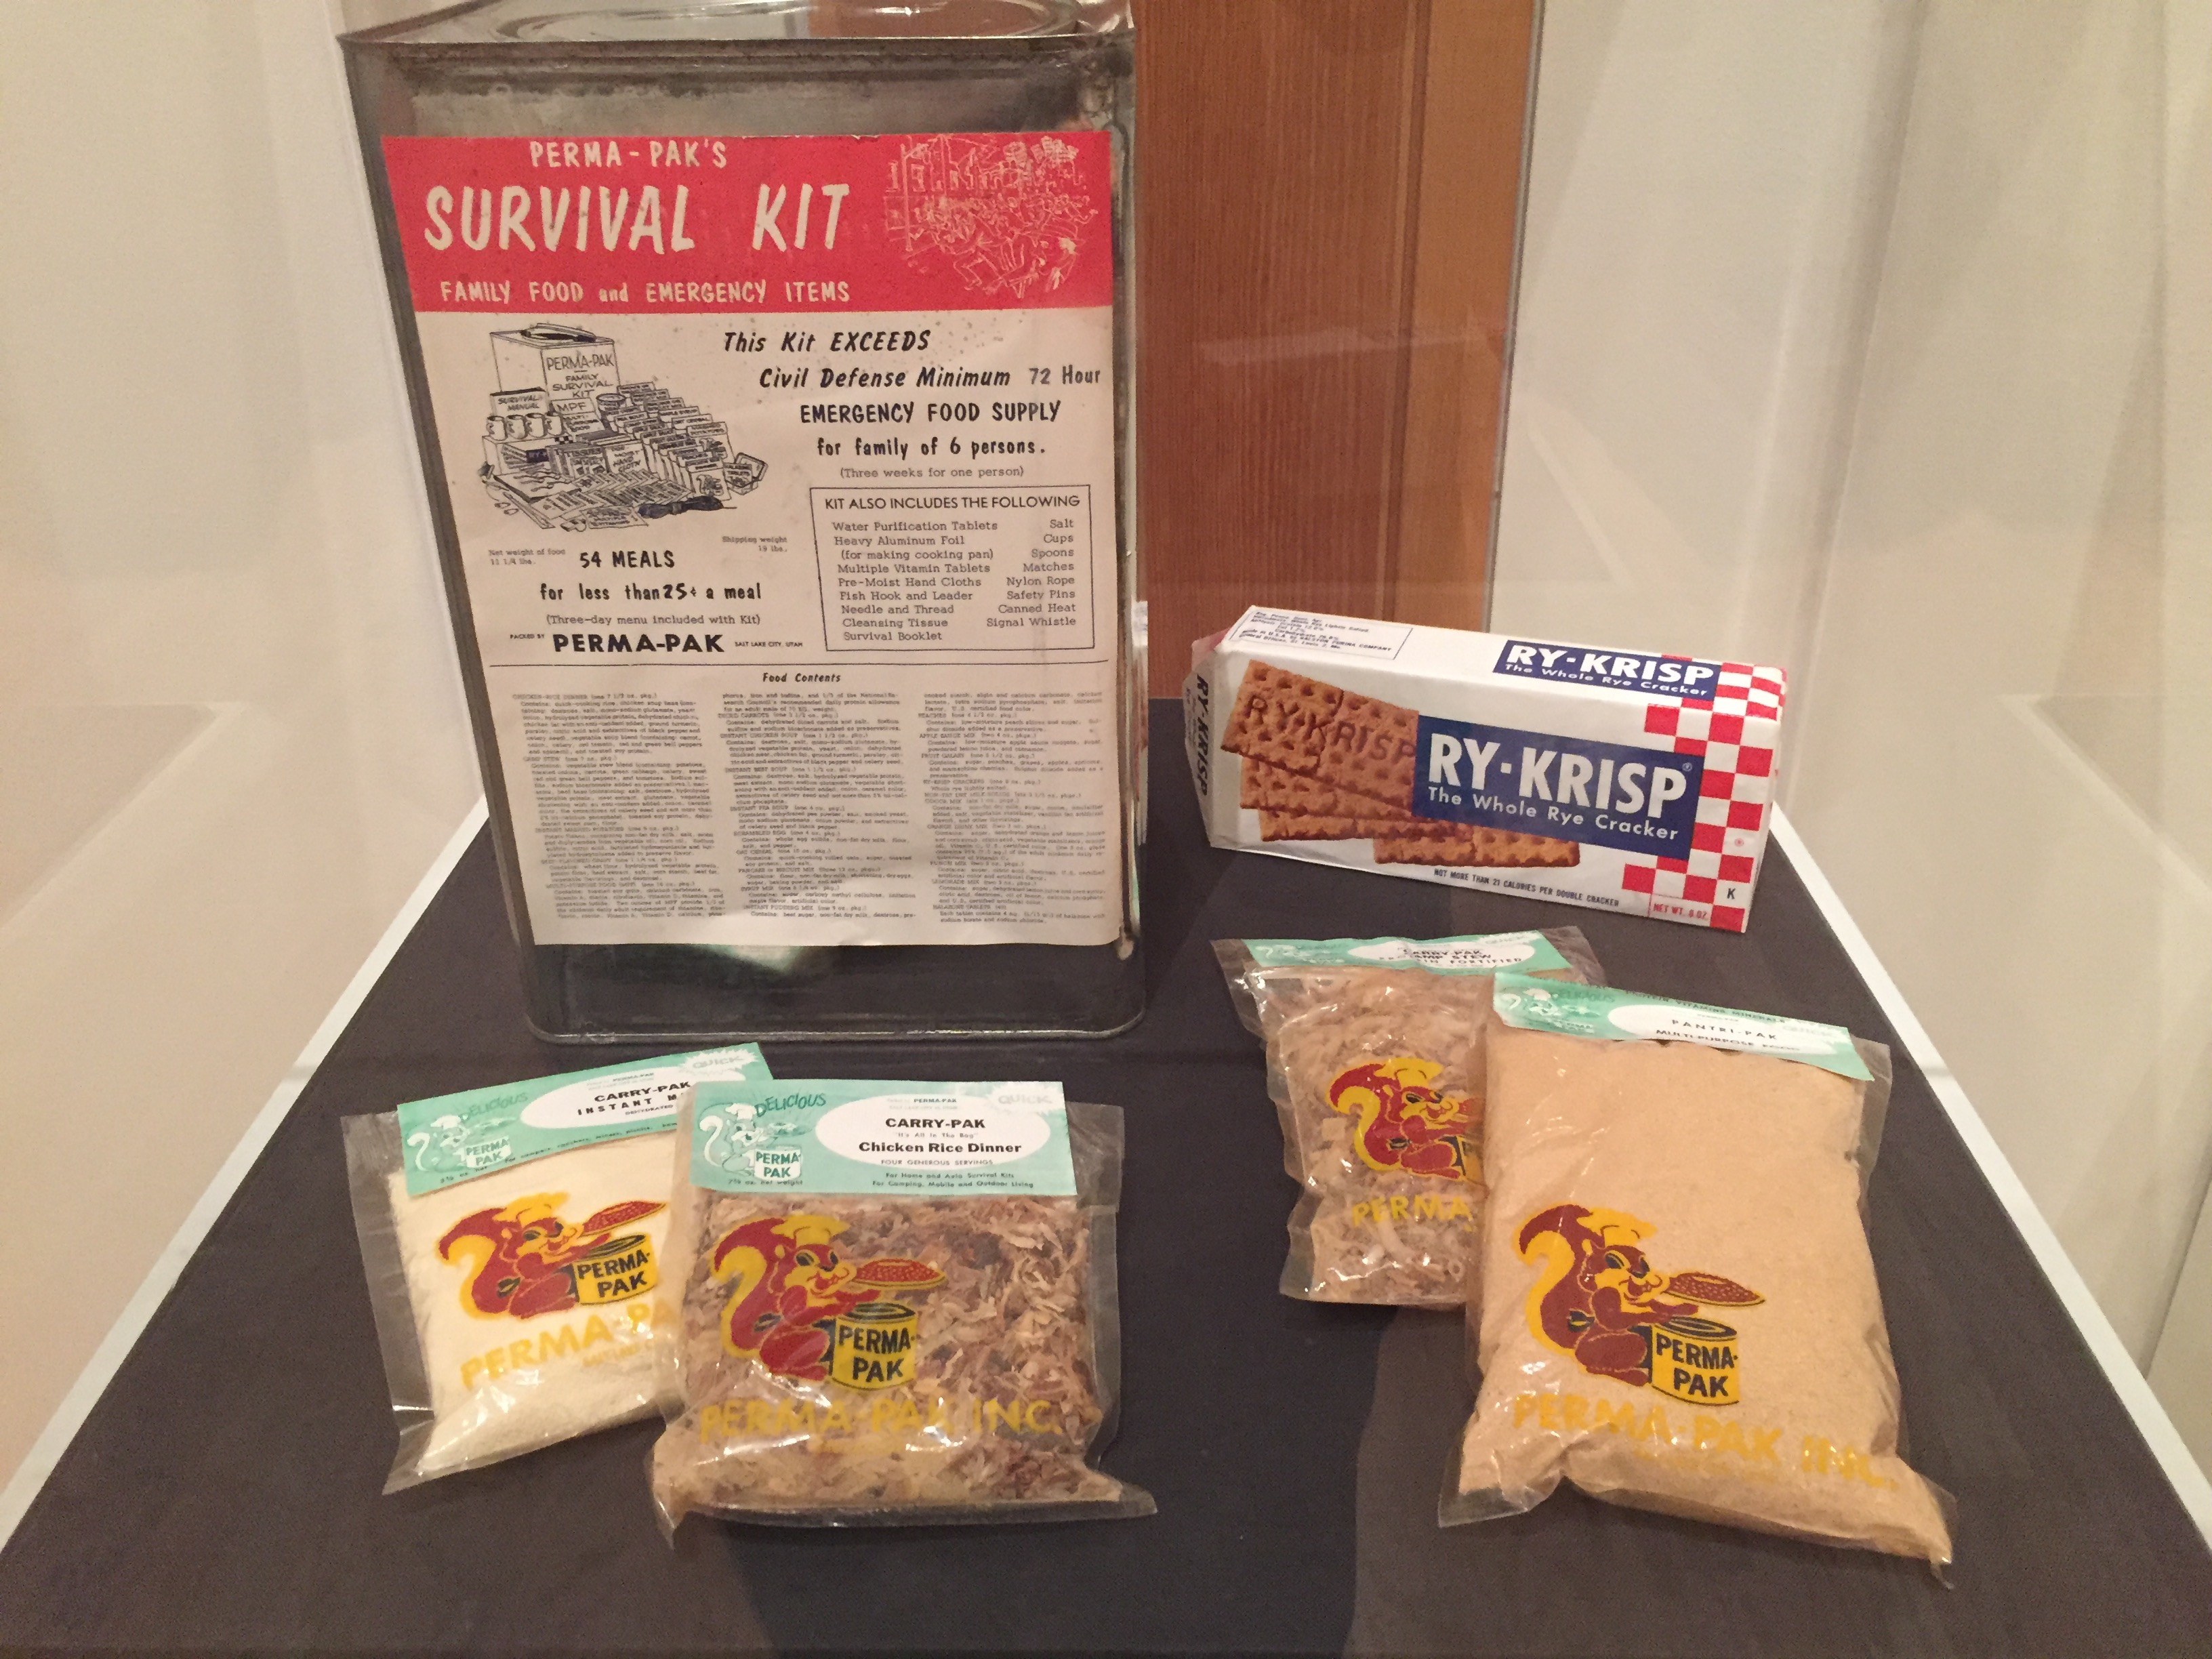 1950's Emergency Preparedness Kit